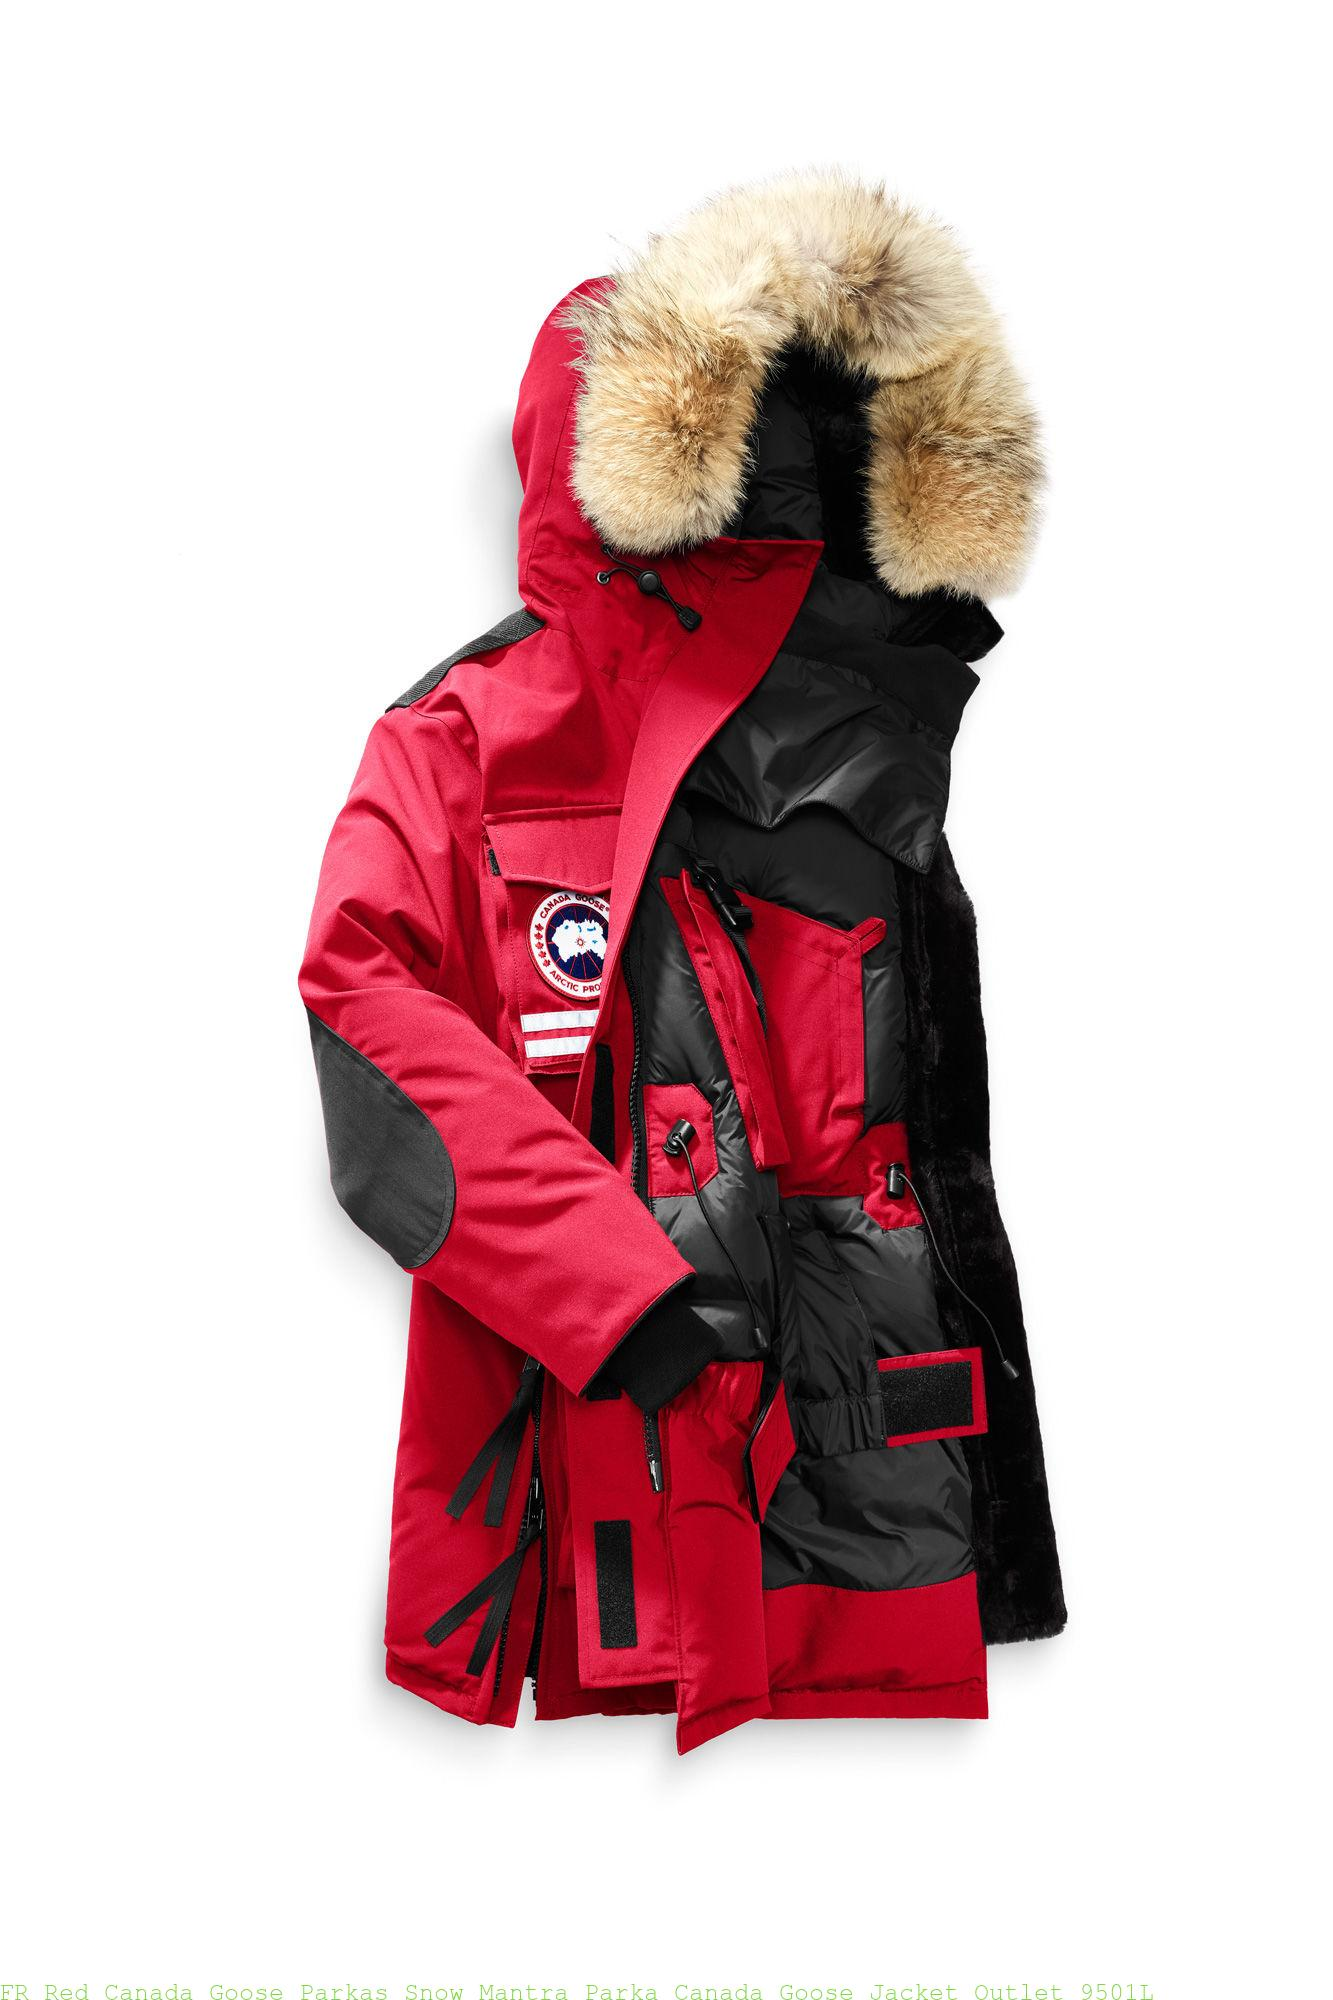 on sale 561b8 a70d2 FR Red Canada Goose Parkas Snow Mantra Parka Canada Goose Jacket Outlet  9501L